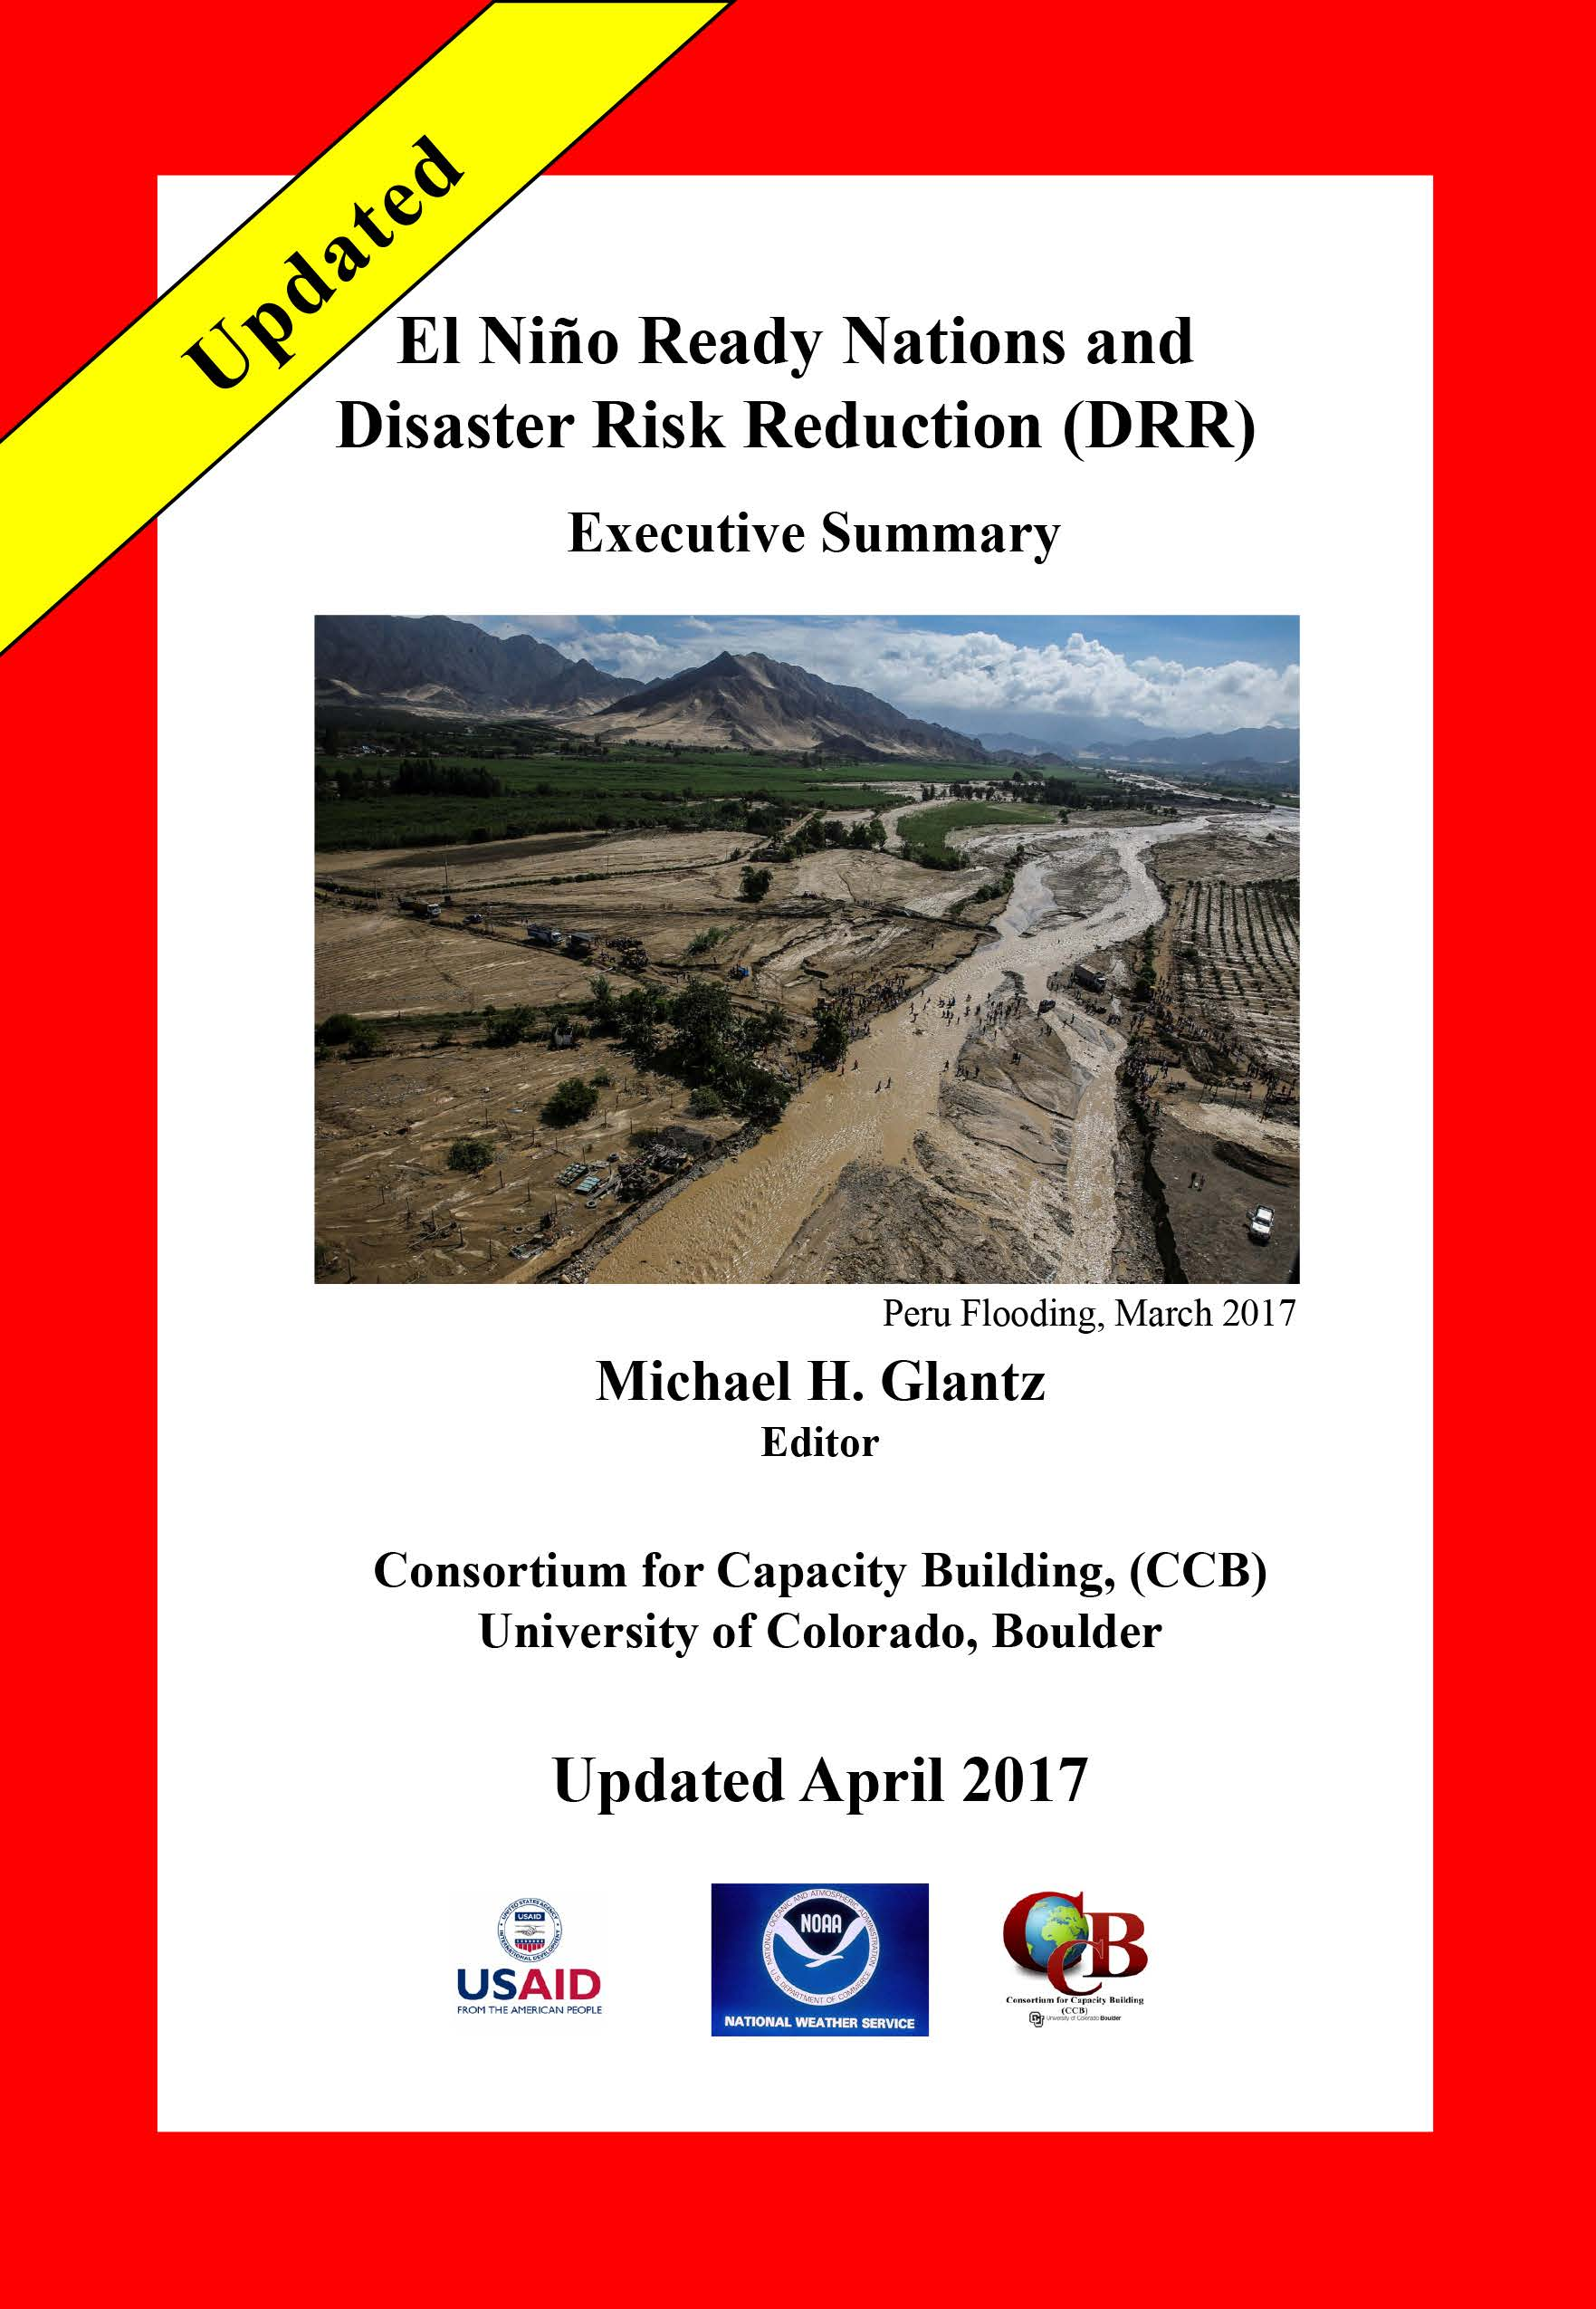 El Niño Ready Nations and Disaster Risk Deduction (DRR) Report